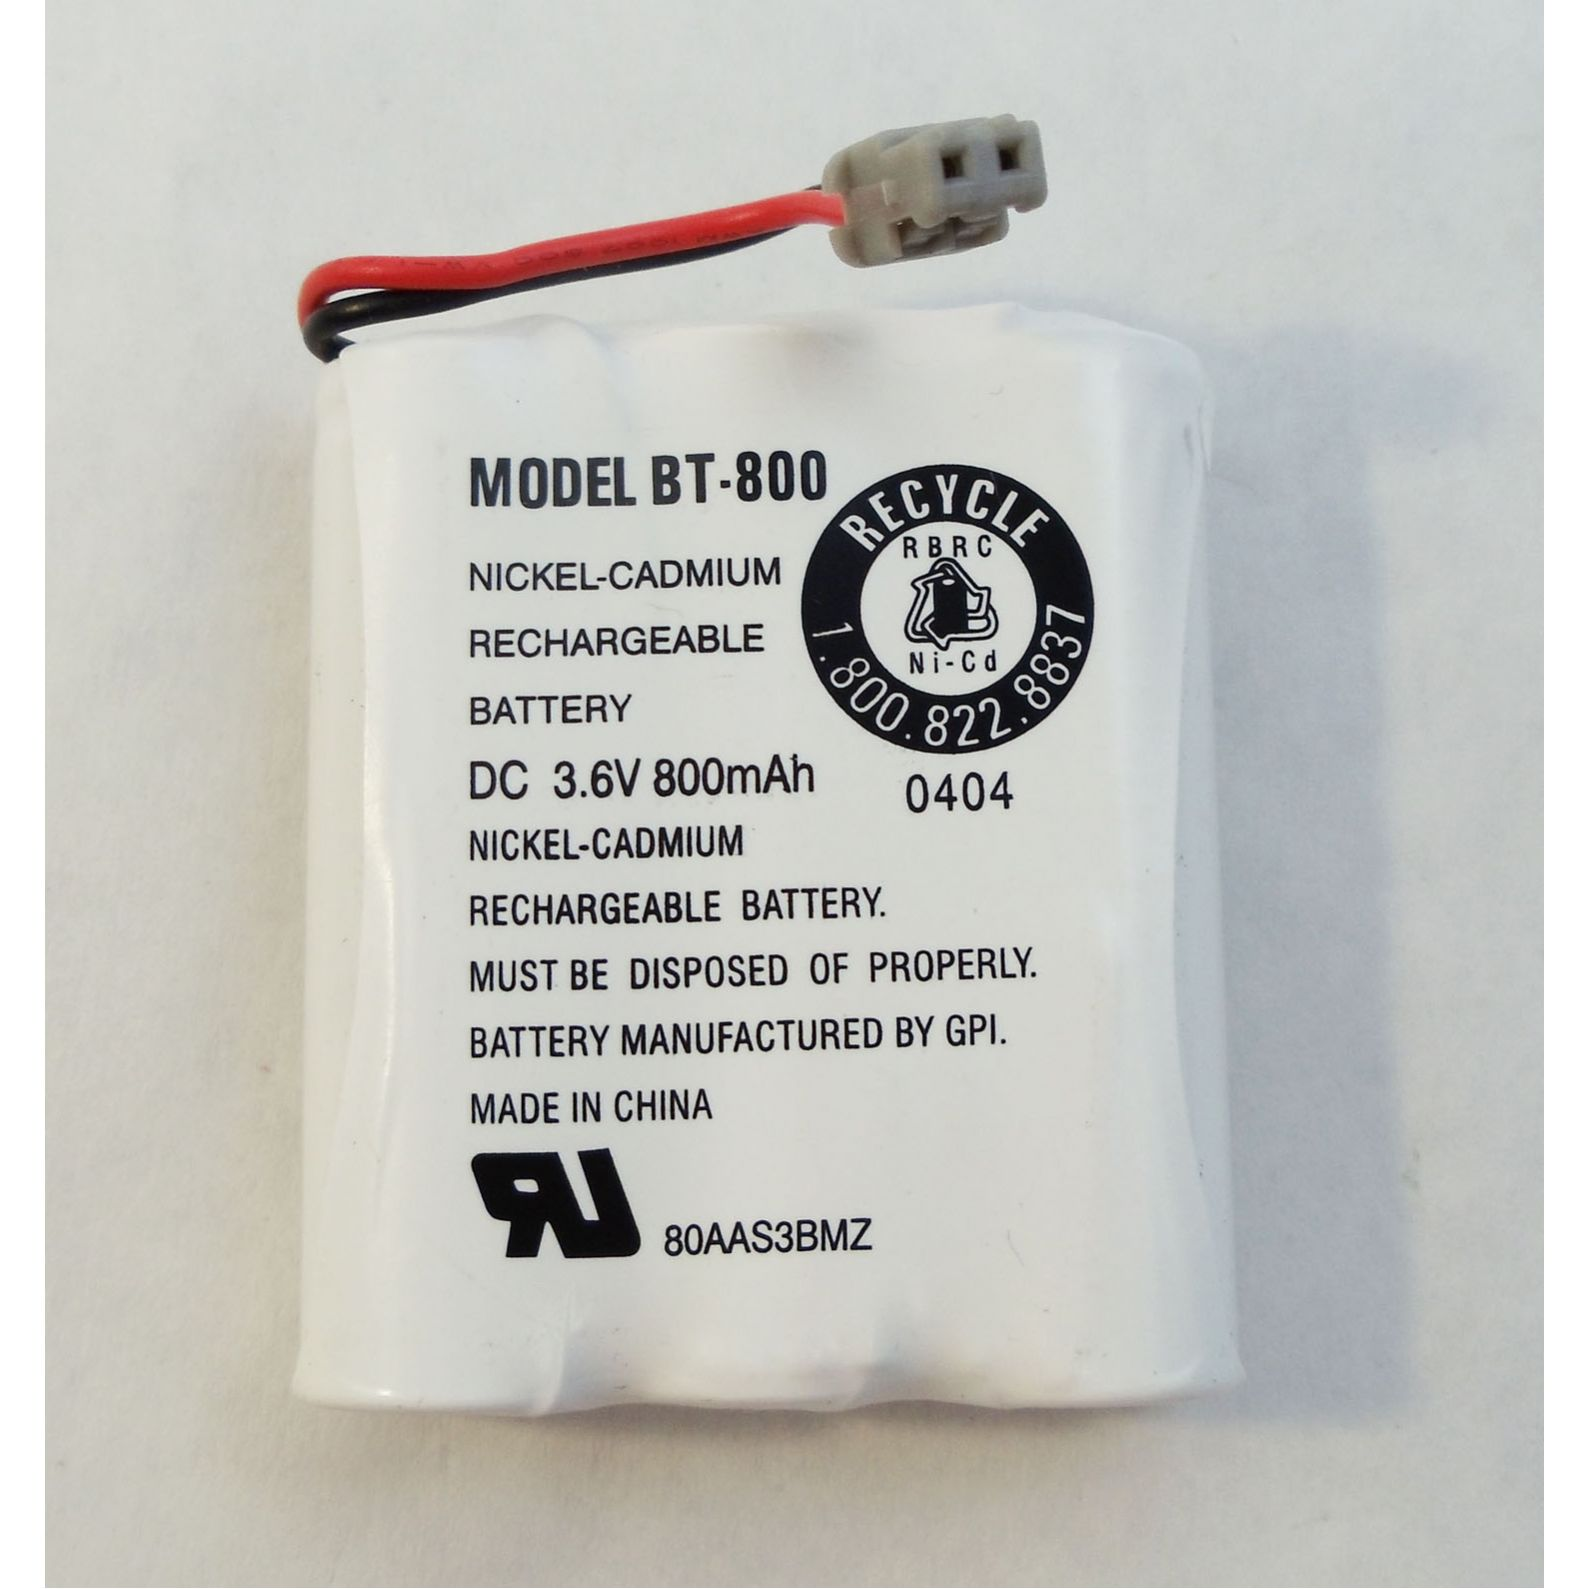 BT800 - Uniden Bearcat Replacement Battery Pack